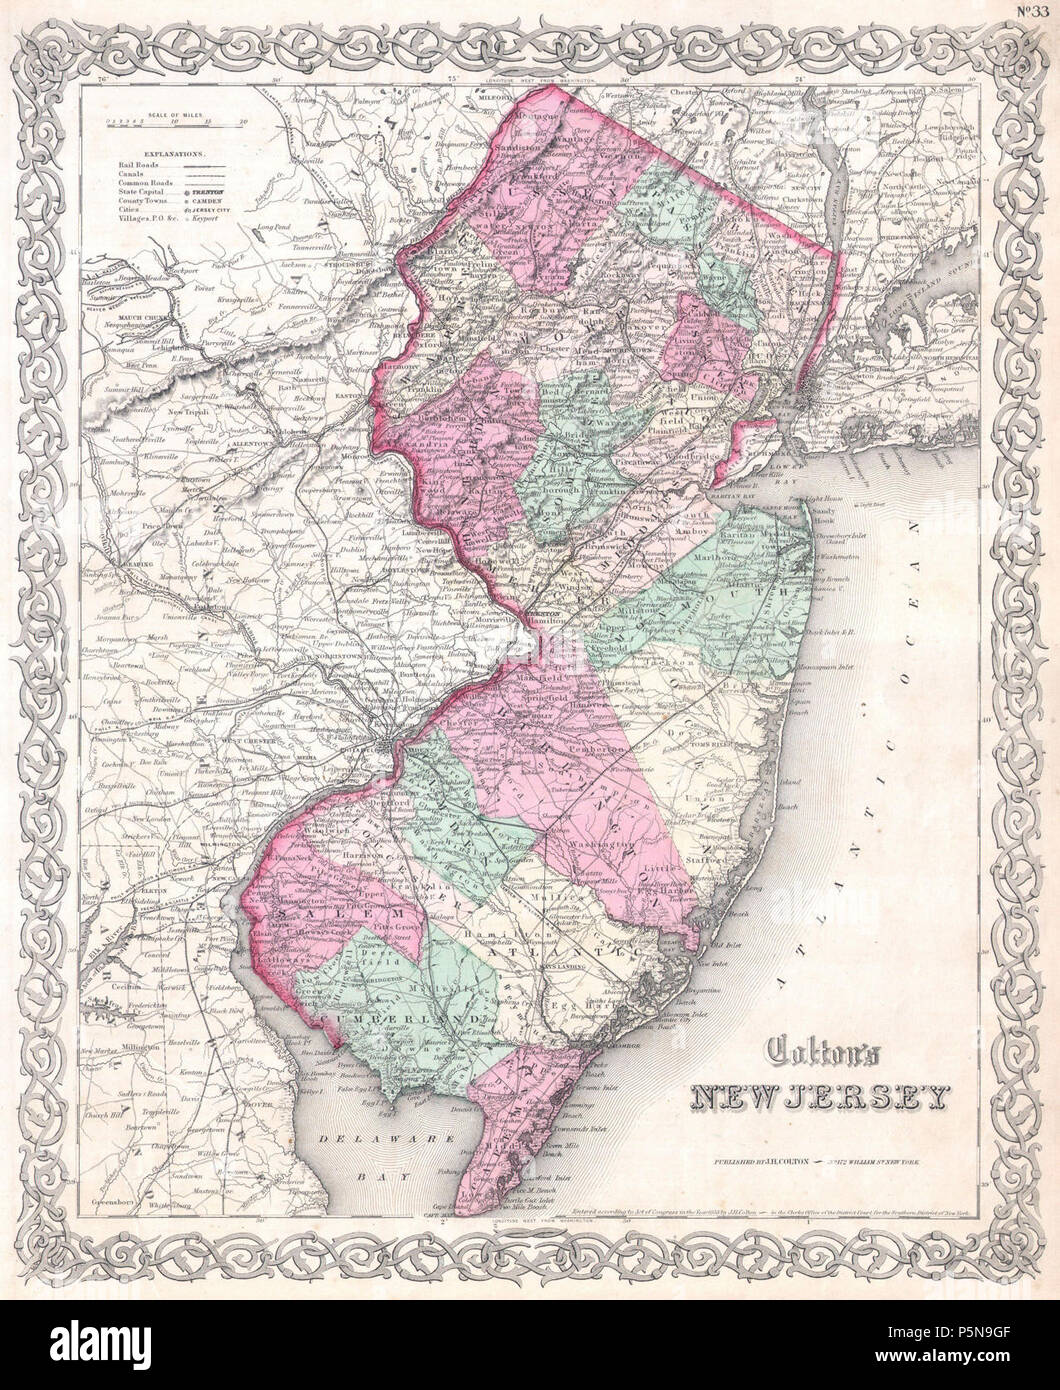 1855 Colton Map of New Jersey - Geographicus - NewJersey-c-1855. - Stock Image